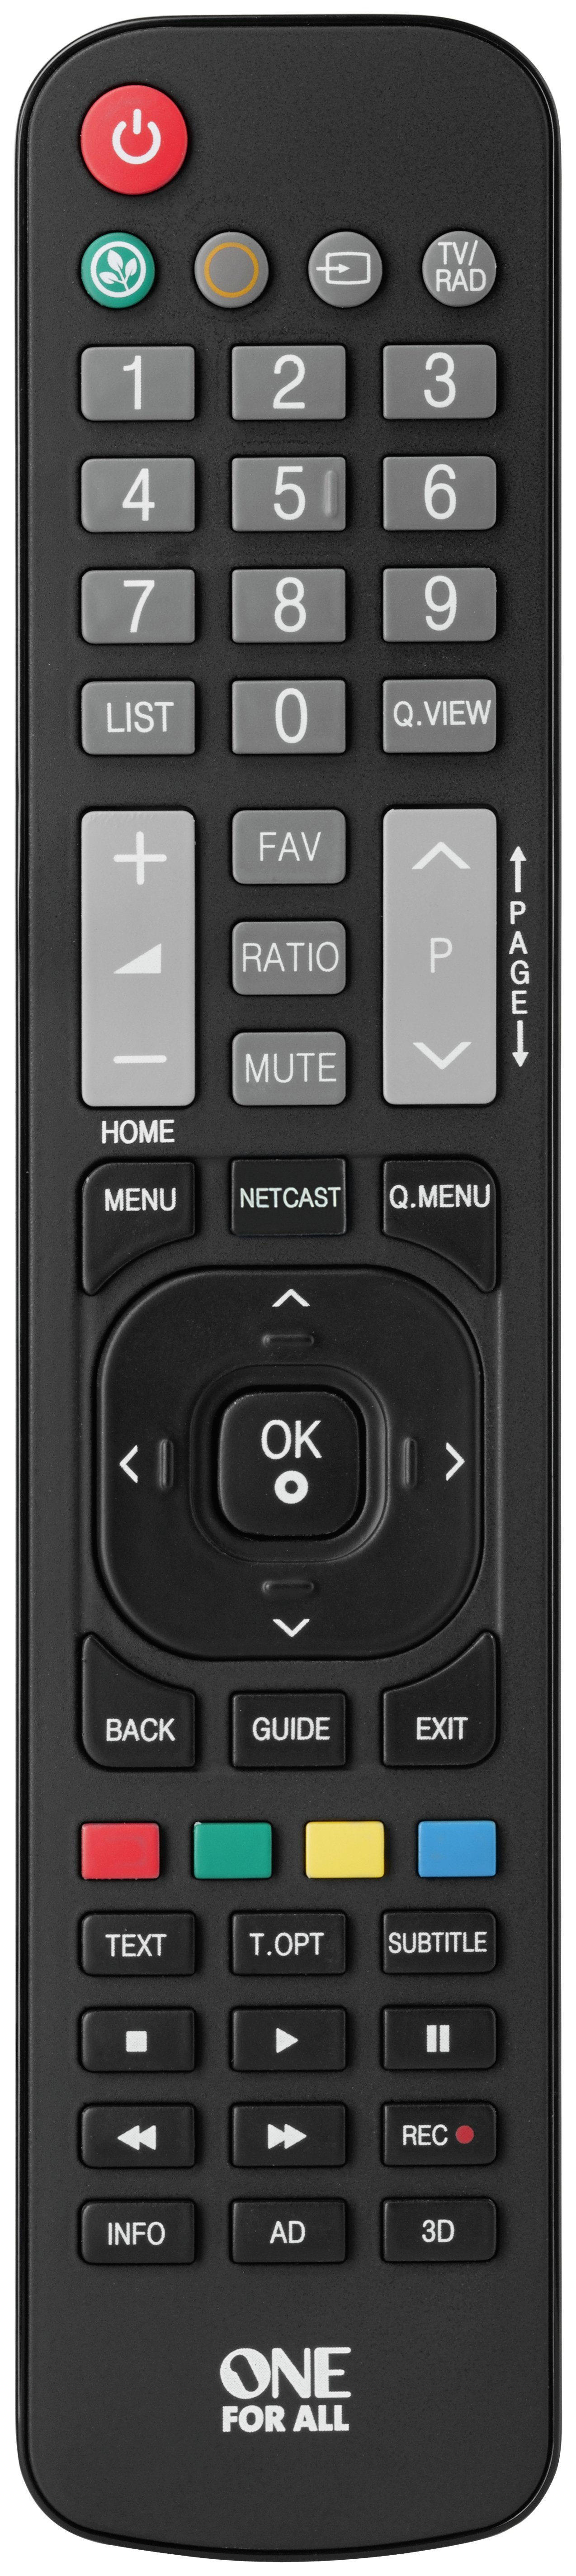 Image of One For All LG Remote Control